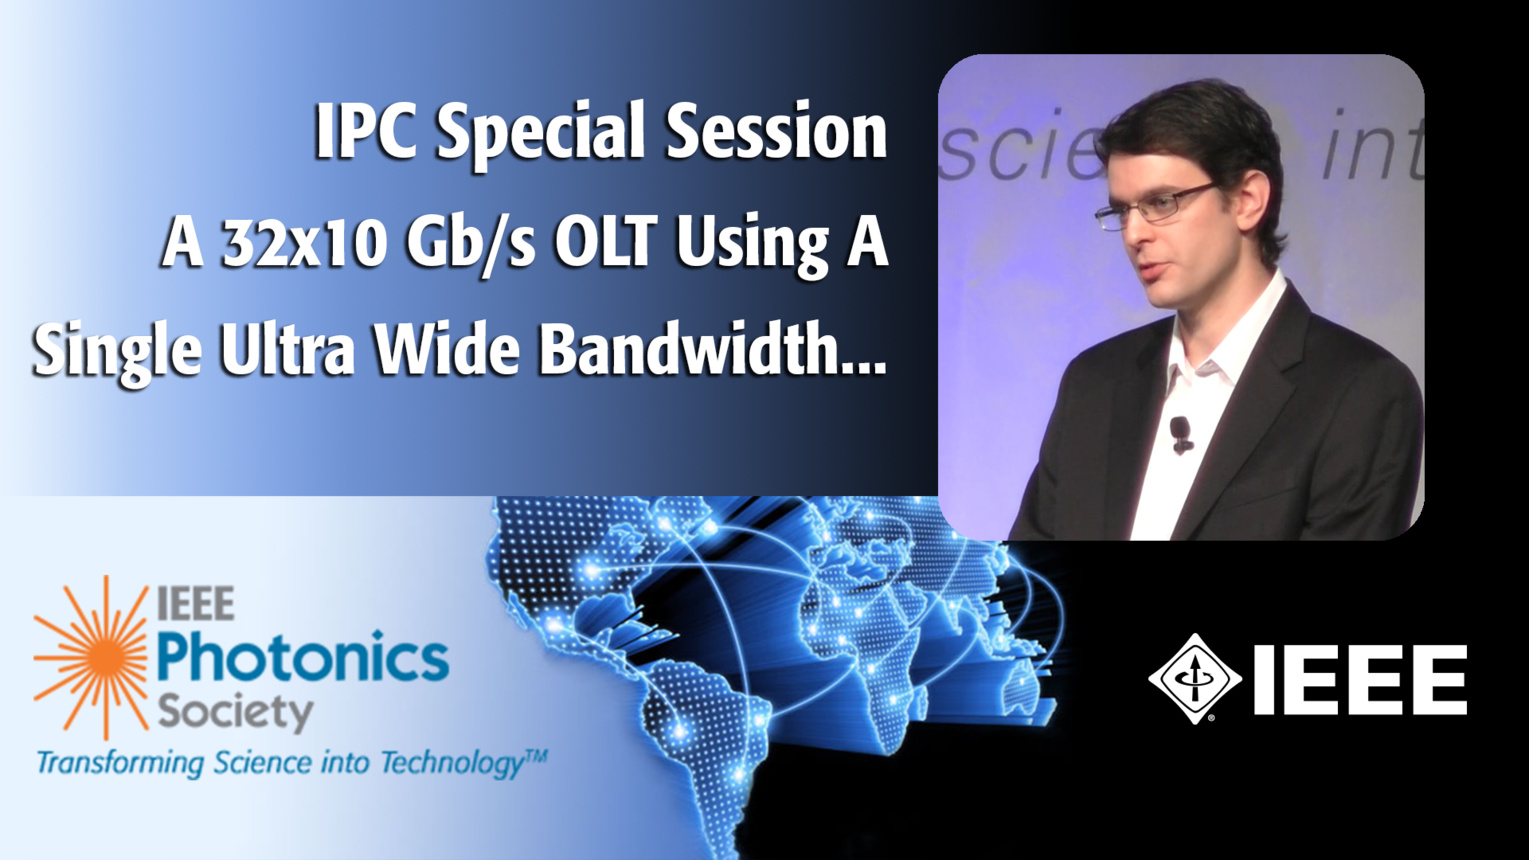 IEEE IPC Special Session with Domanic Lavery of UCL